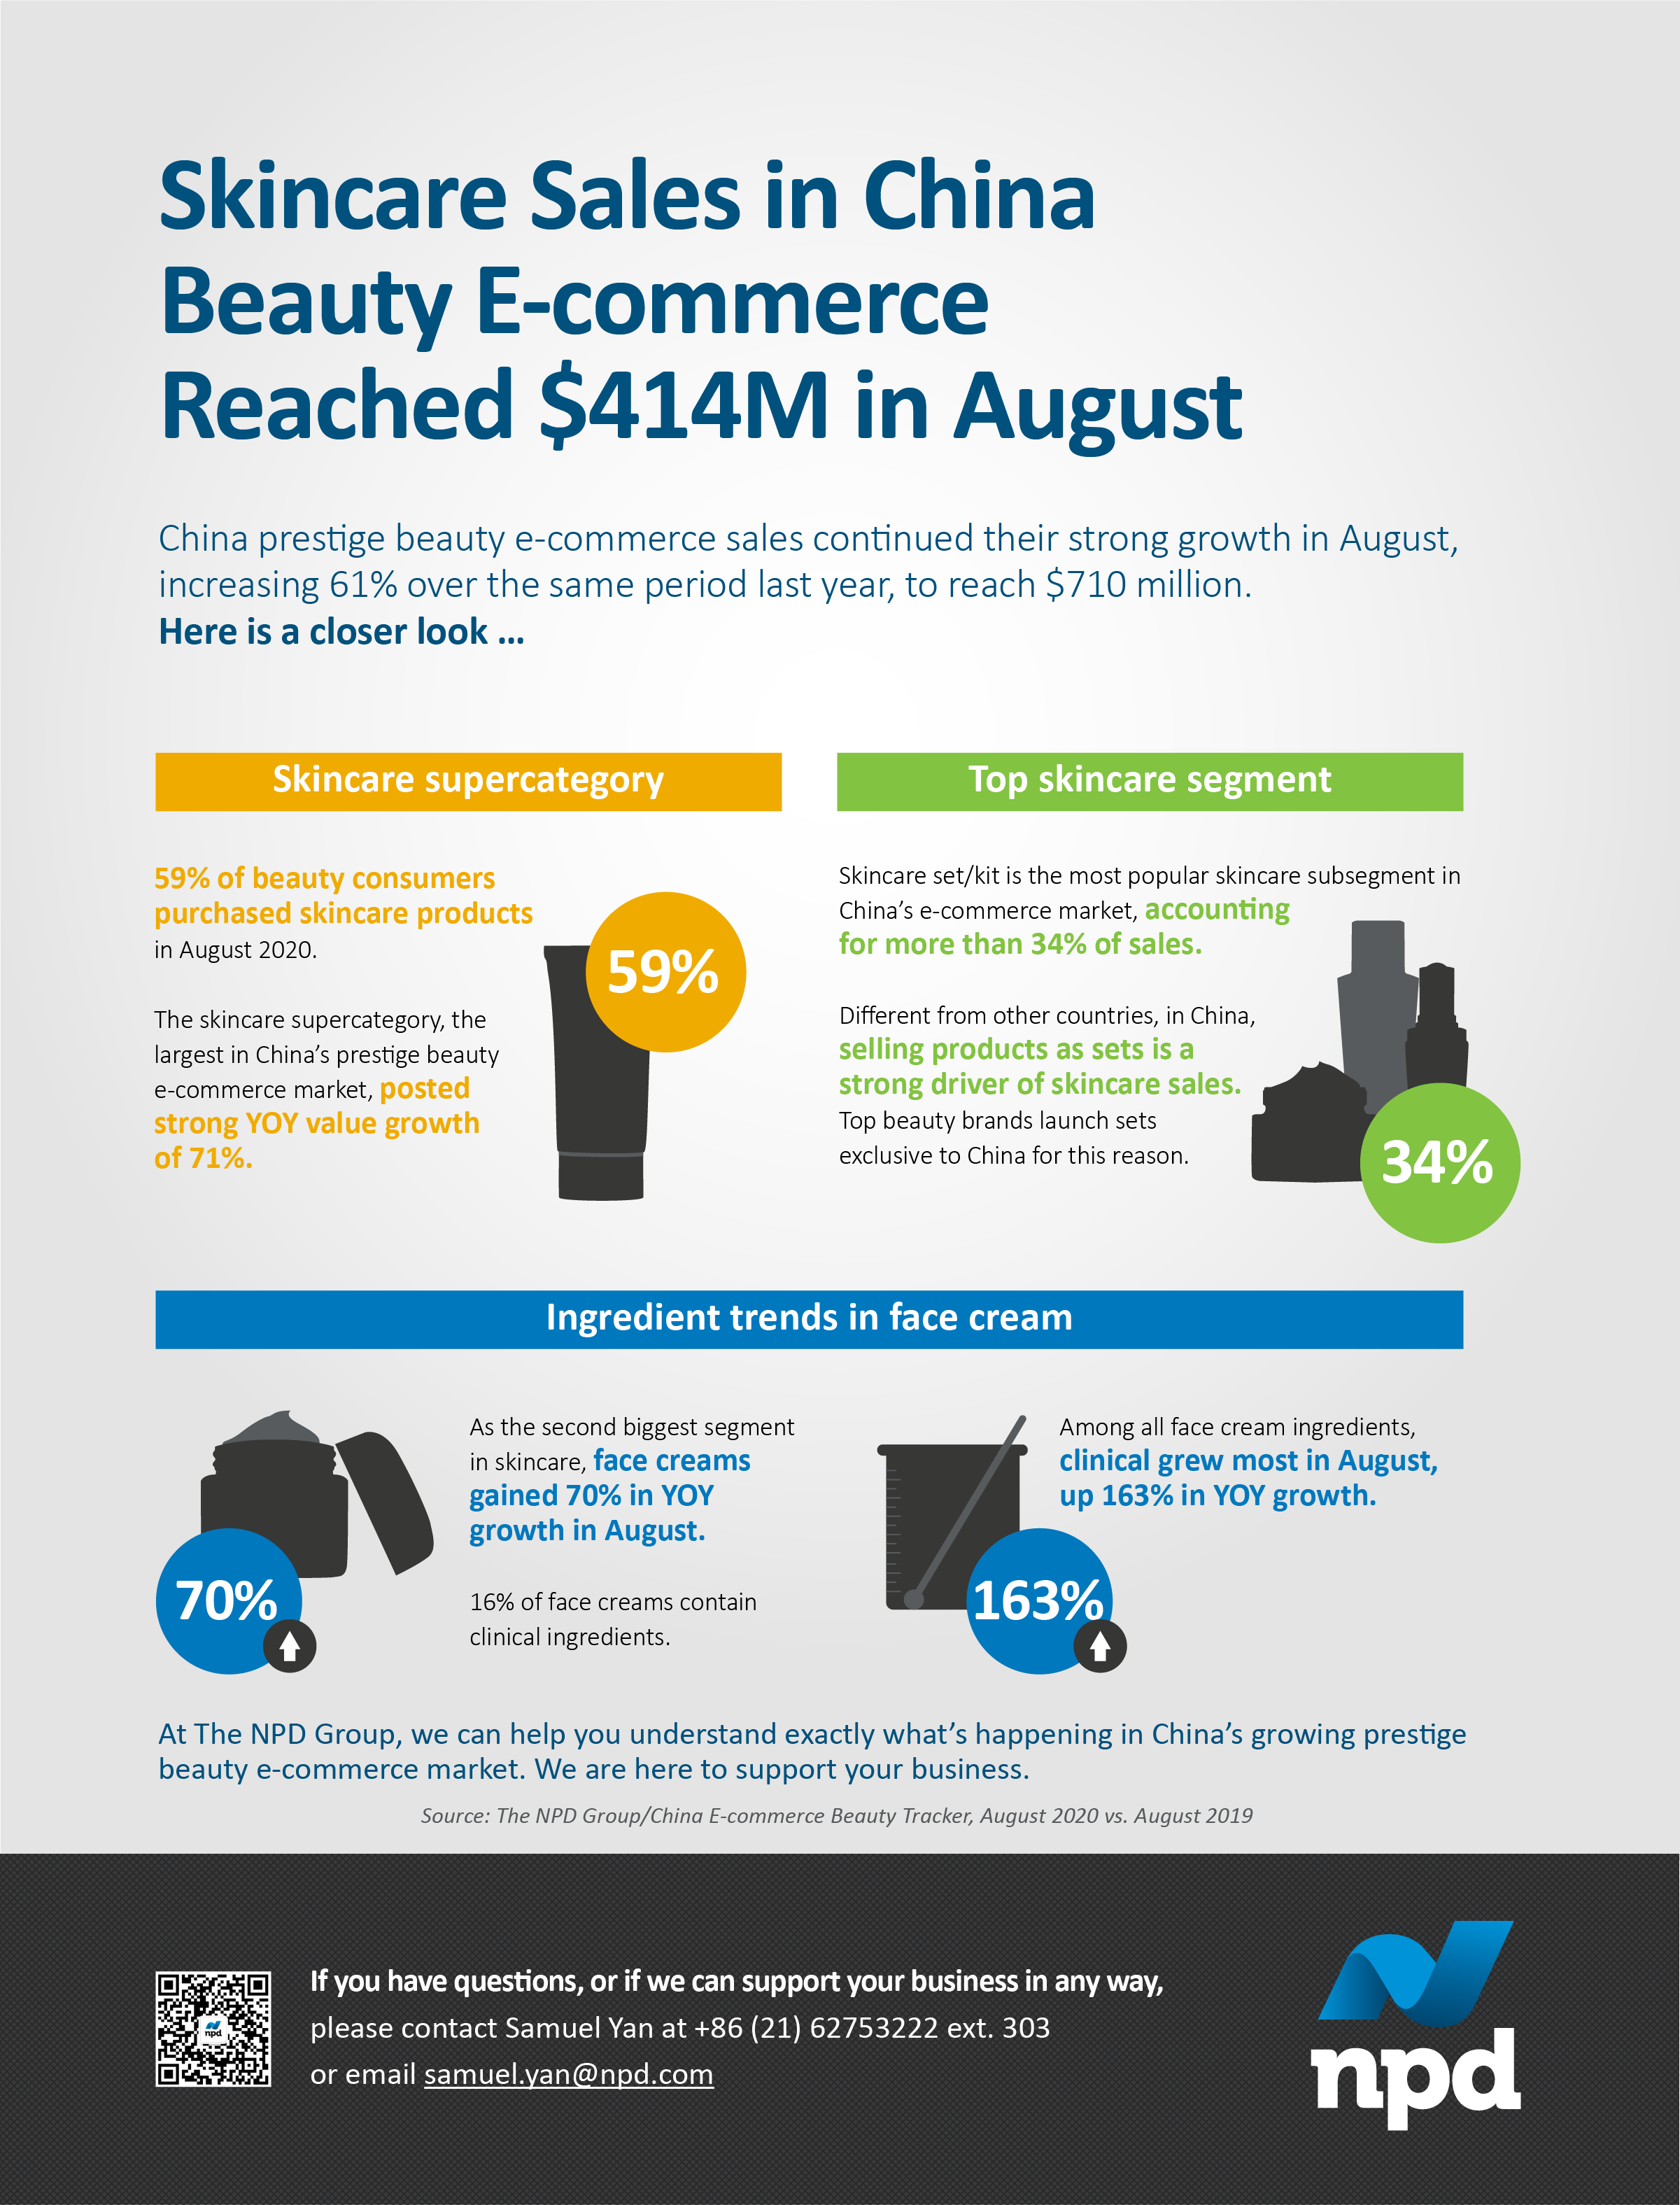 China prestige beauty e-commerce sales continued their strong growth in August, increasing 61% over the same period last year, to reach $710 million.